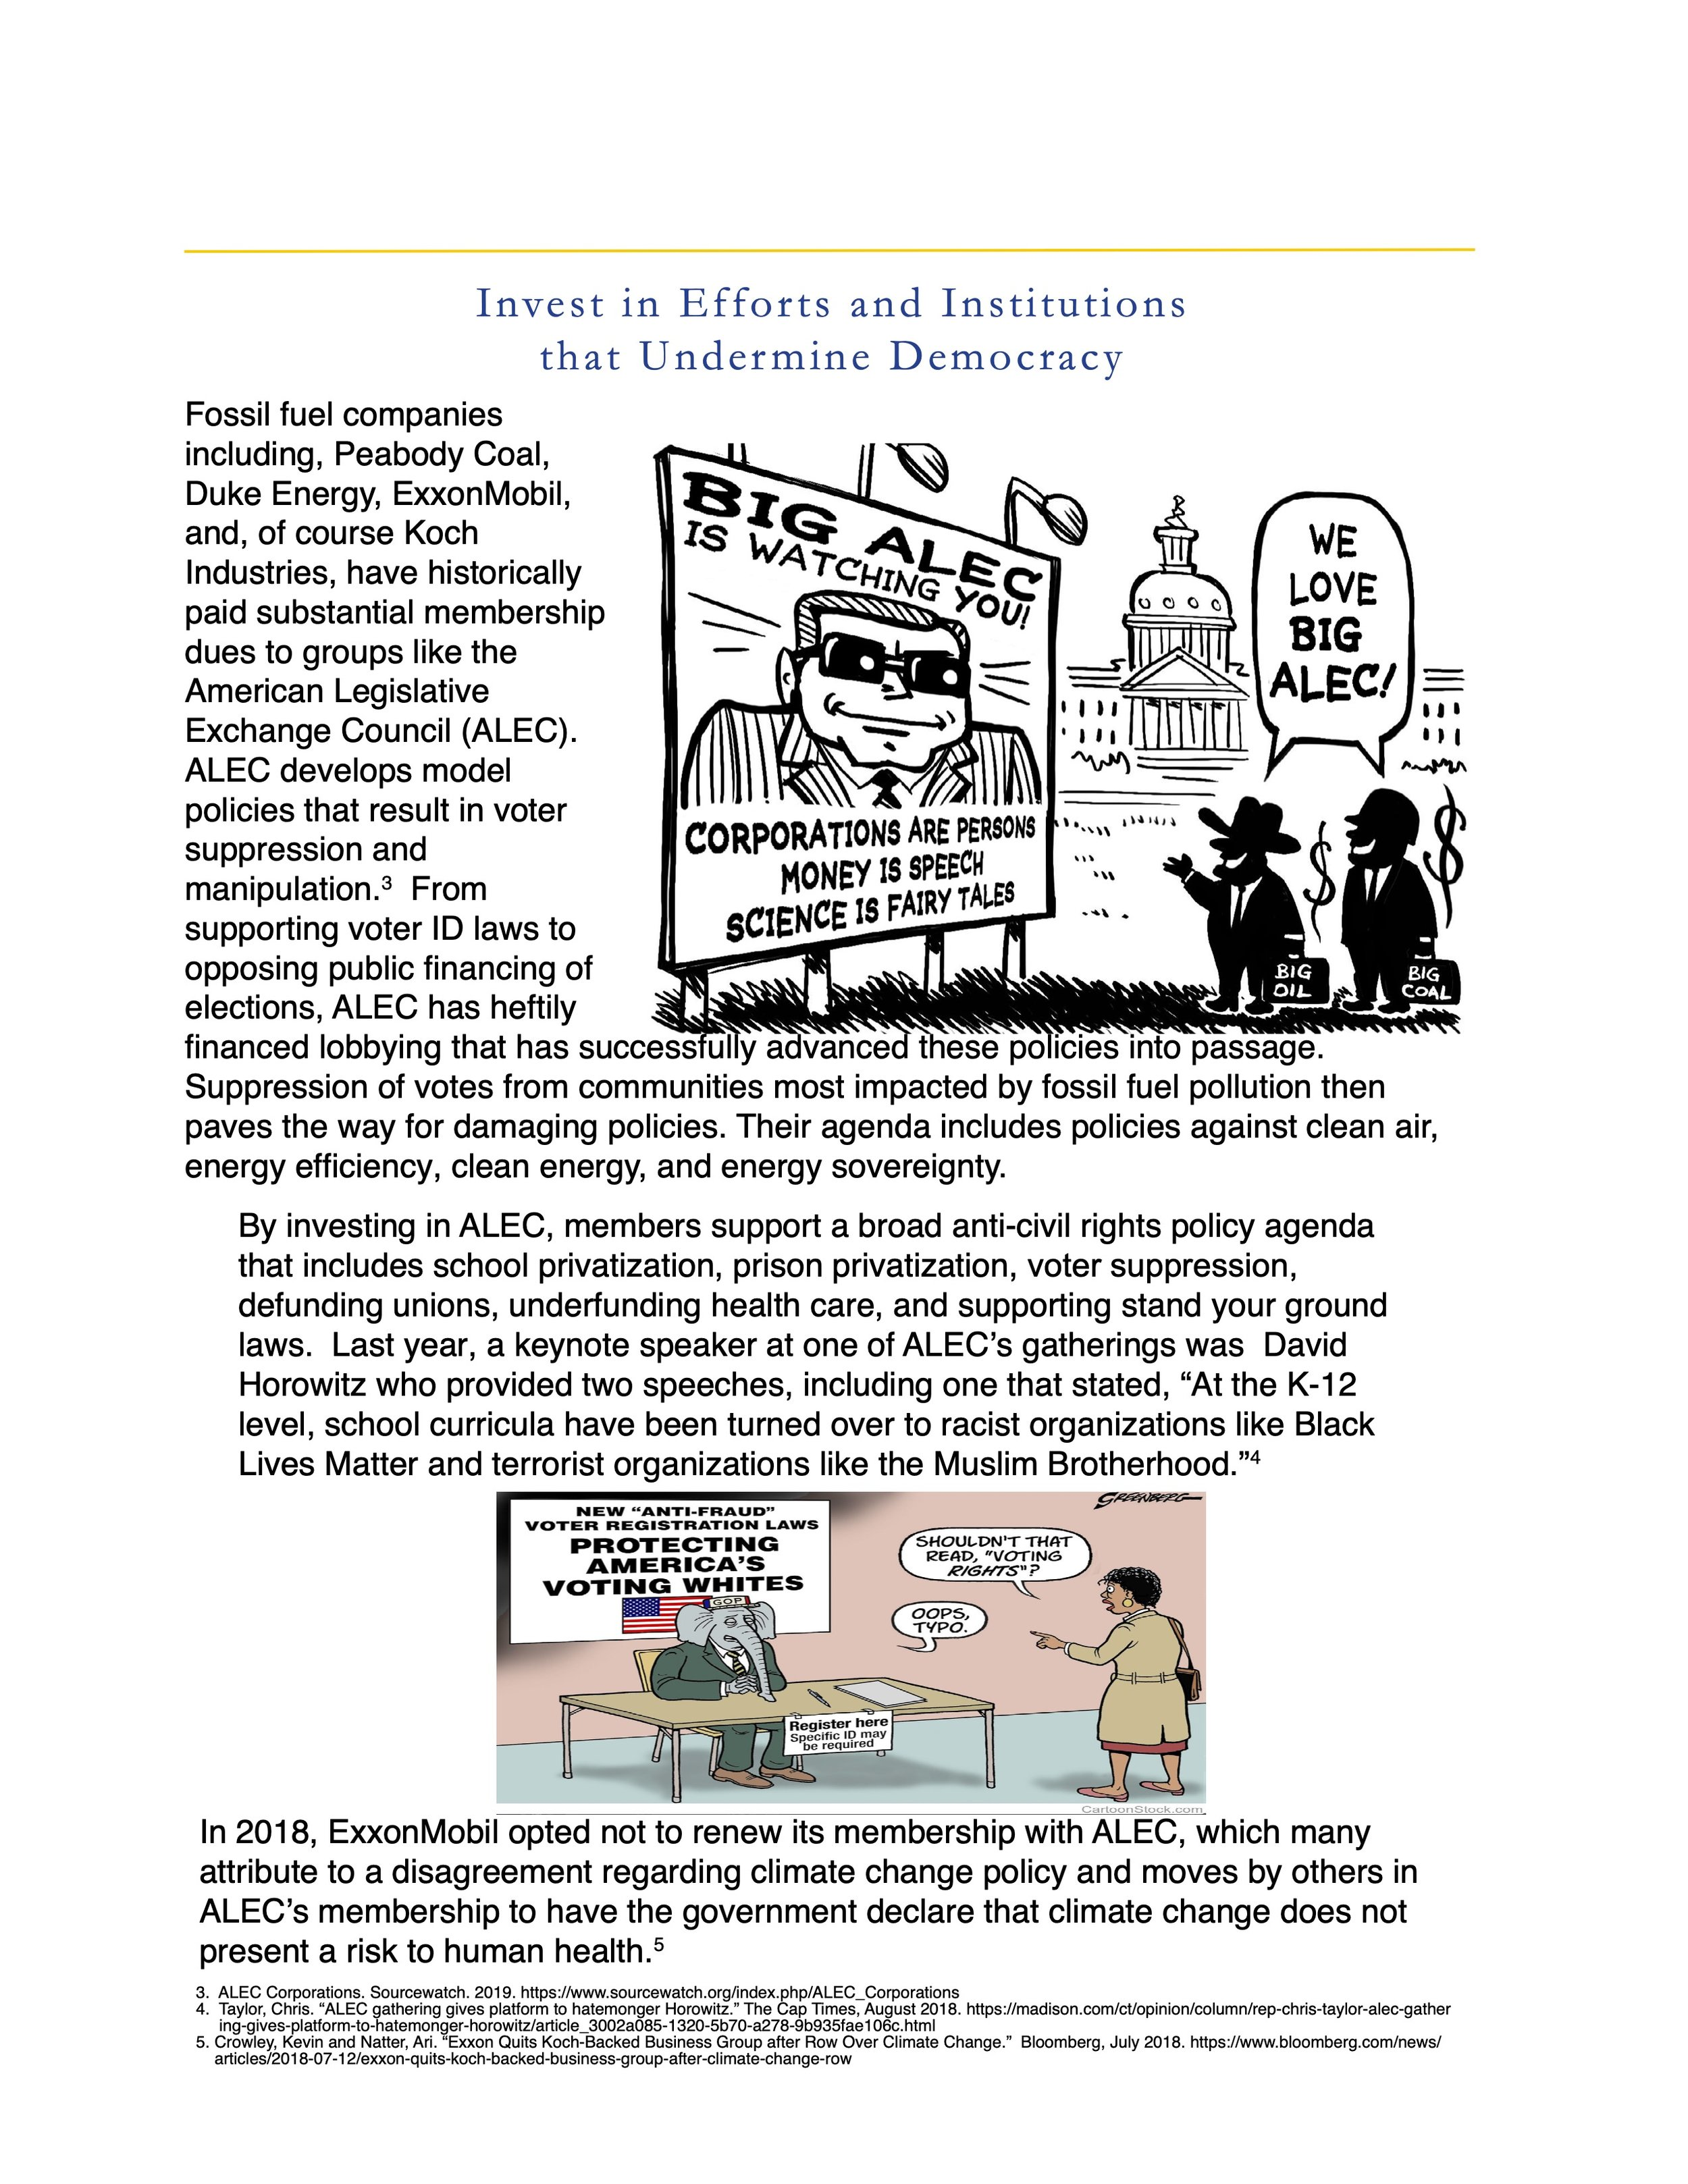 Fossil-Fueled-Foolery-An-Illustrated-Primer-on-the-Top-10-Manipulation-Tactics-of-the-Fossil-Fuel-Industry 5.jpeg